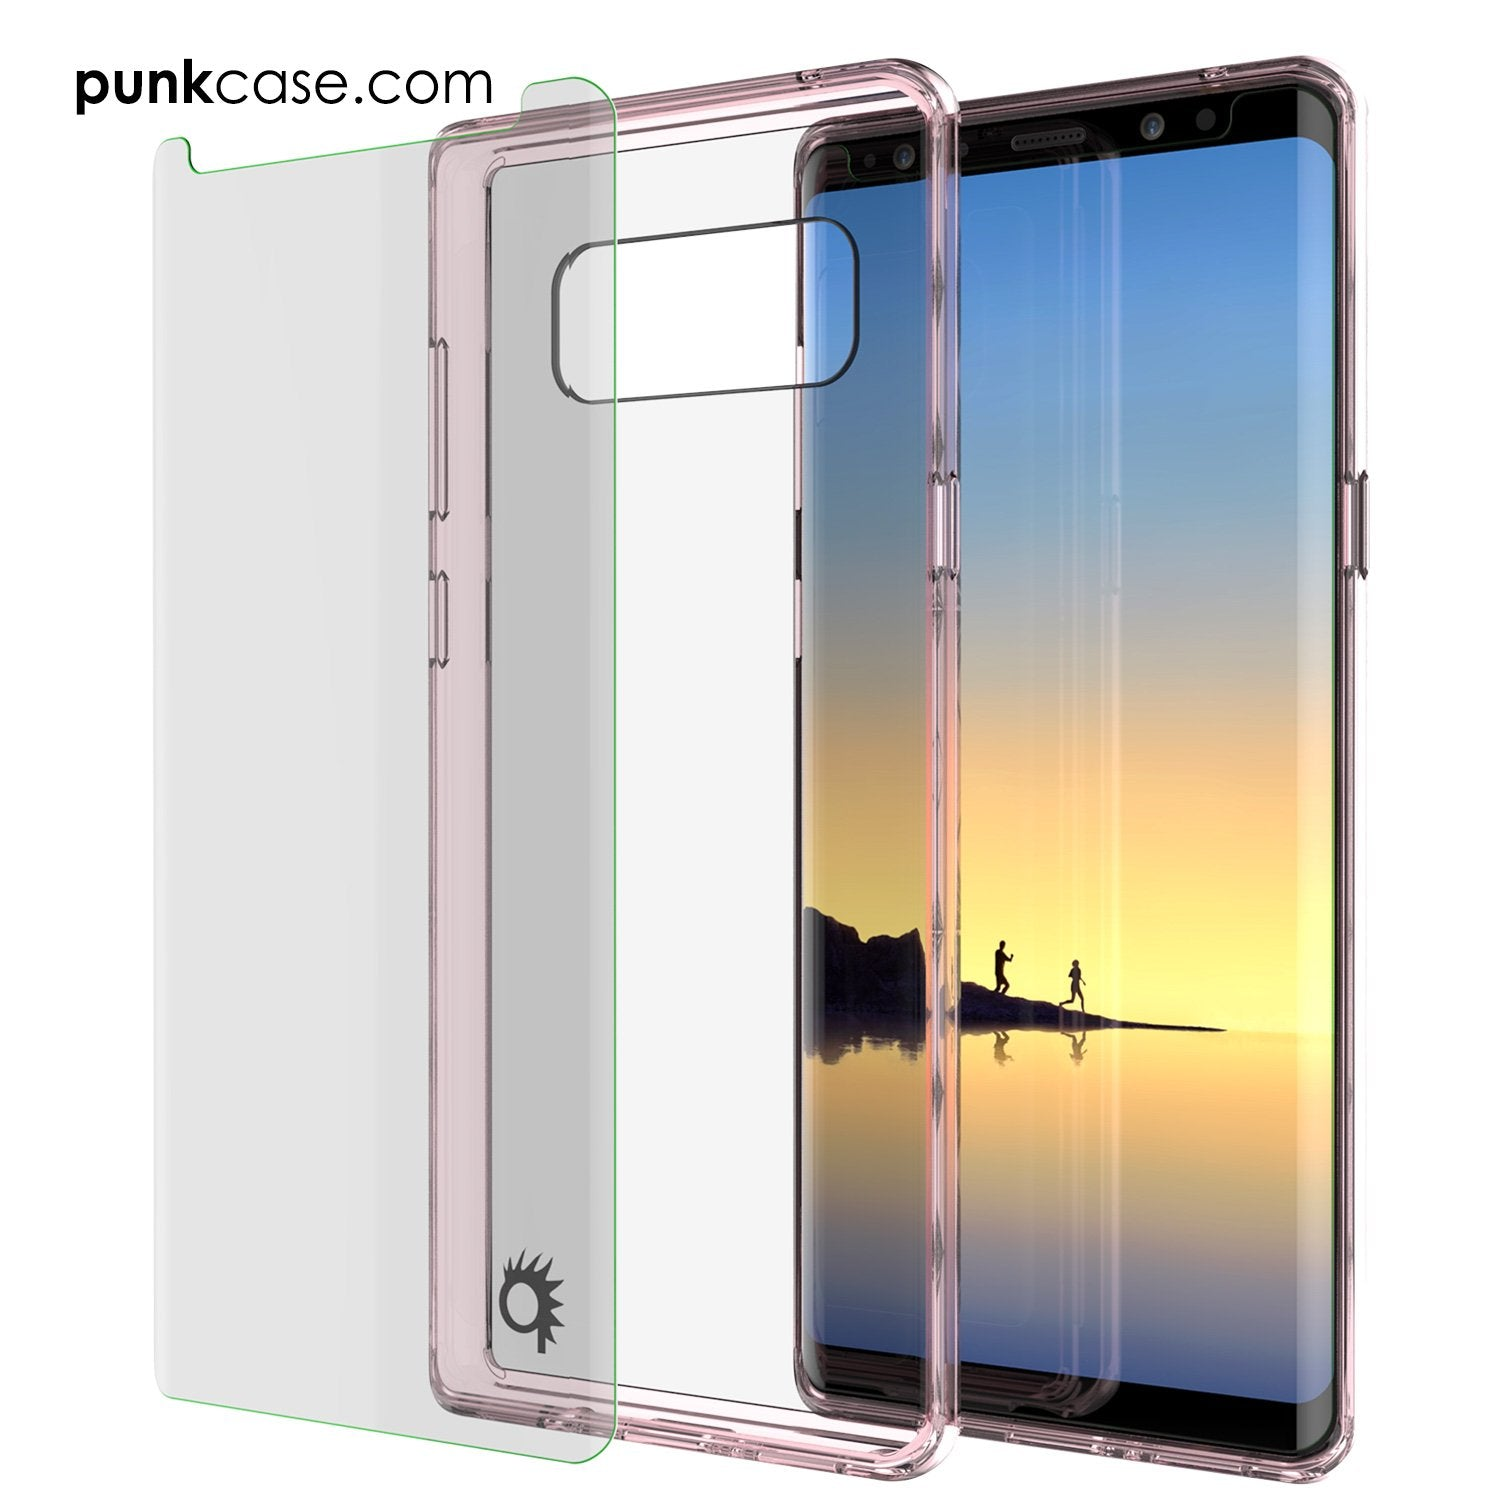 Galaxy Note 8 Punkcase, LUCID 2.0 Series Armor Case, Crystal Pink